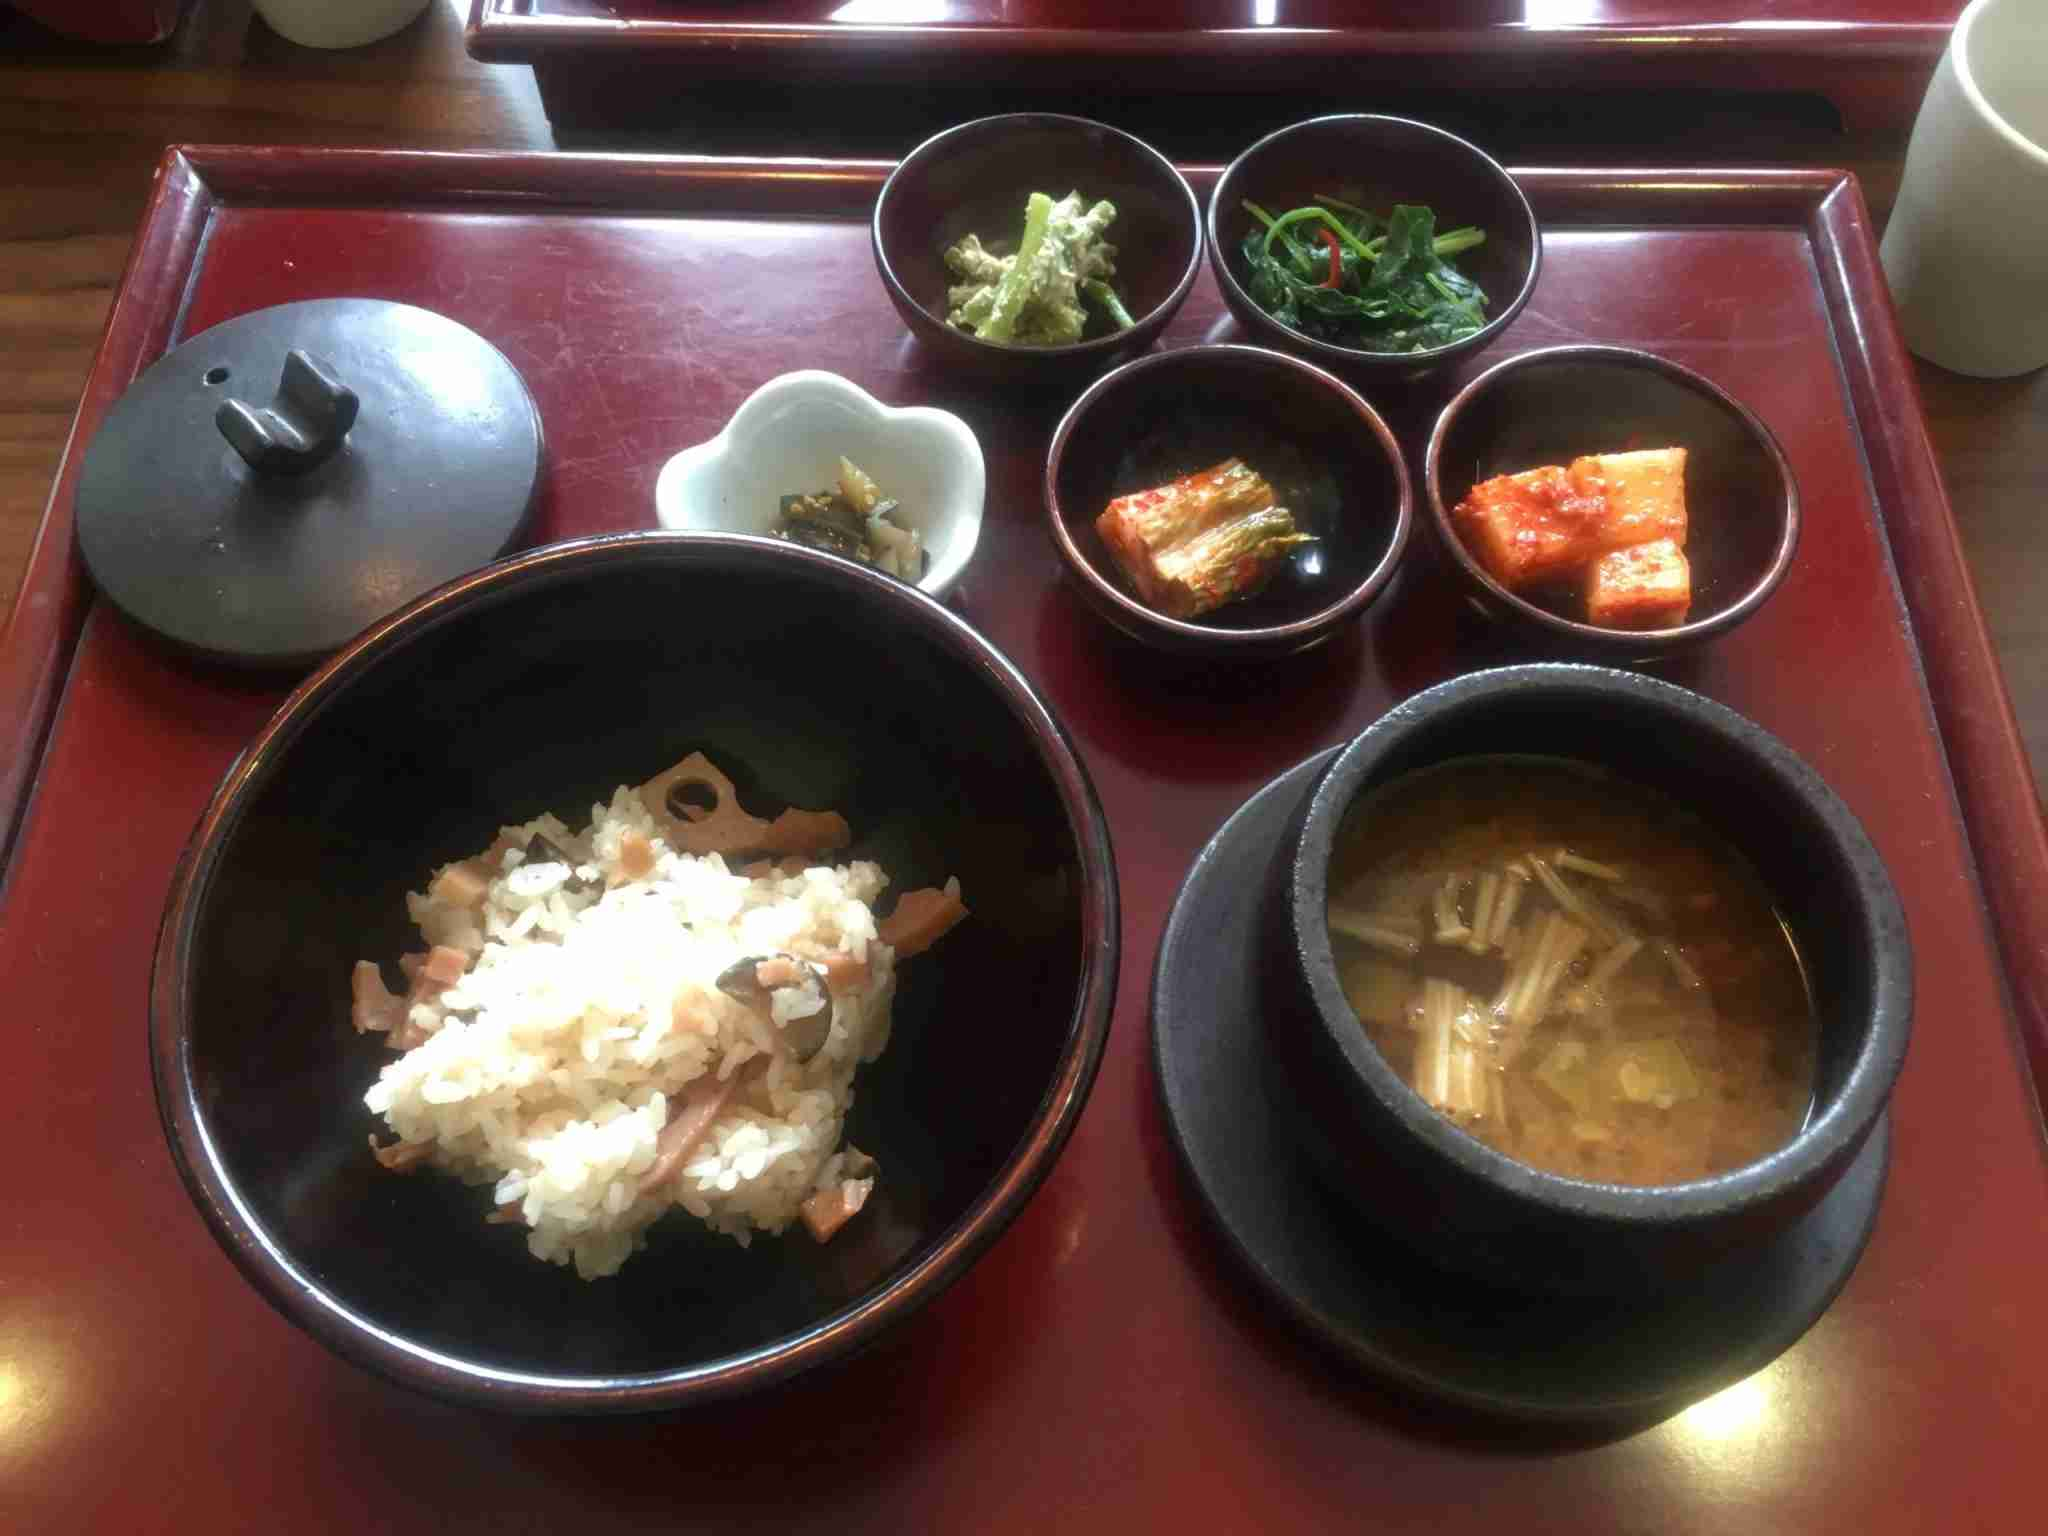 Part of my Korean temple food meal at Sanchon in Seoul, South Korea. (Photo by Benét J. Wilson/The Points Guy)